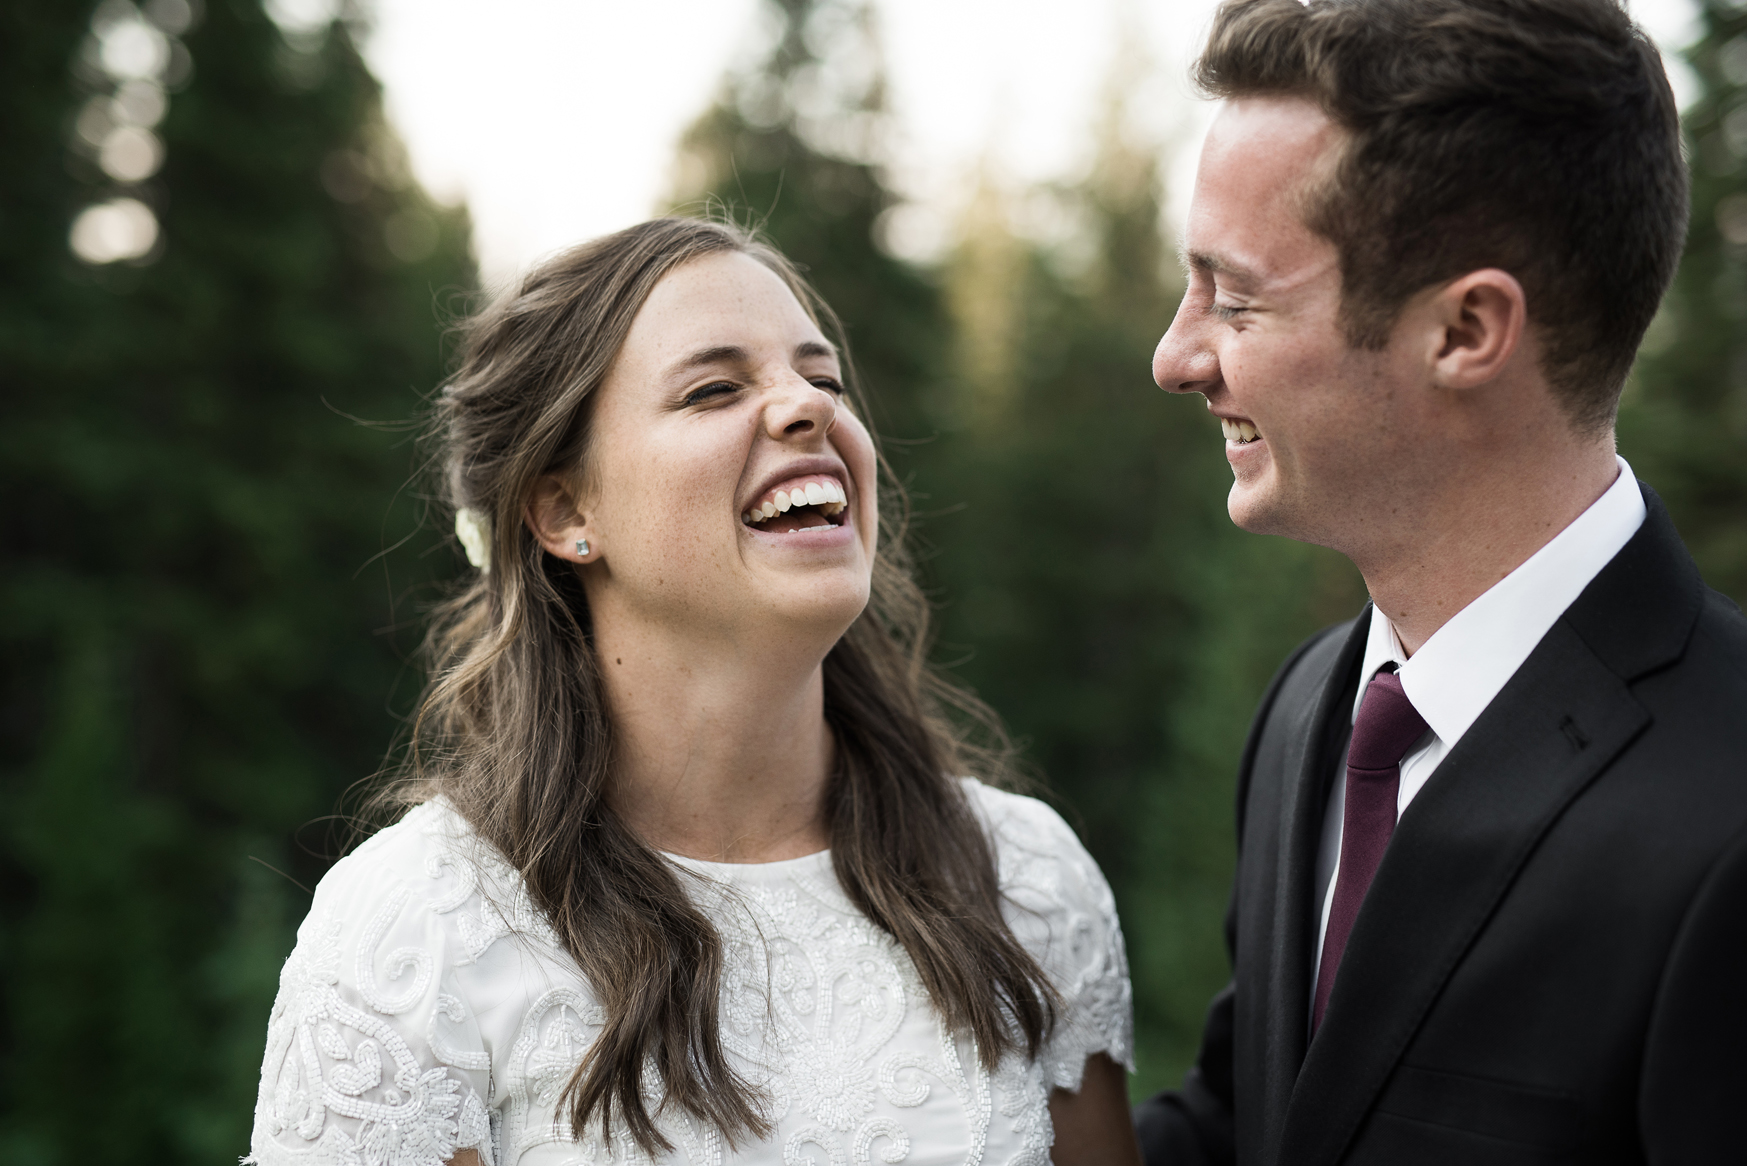 bride and groom laughing with happiness